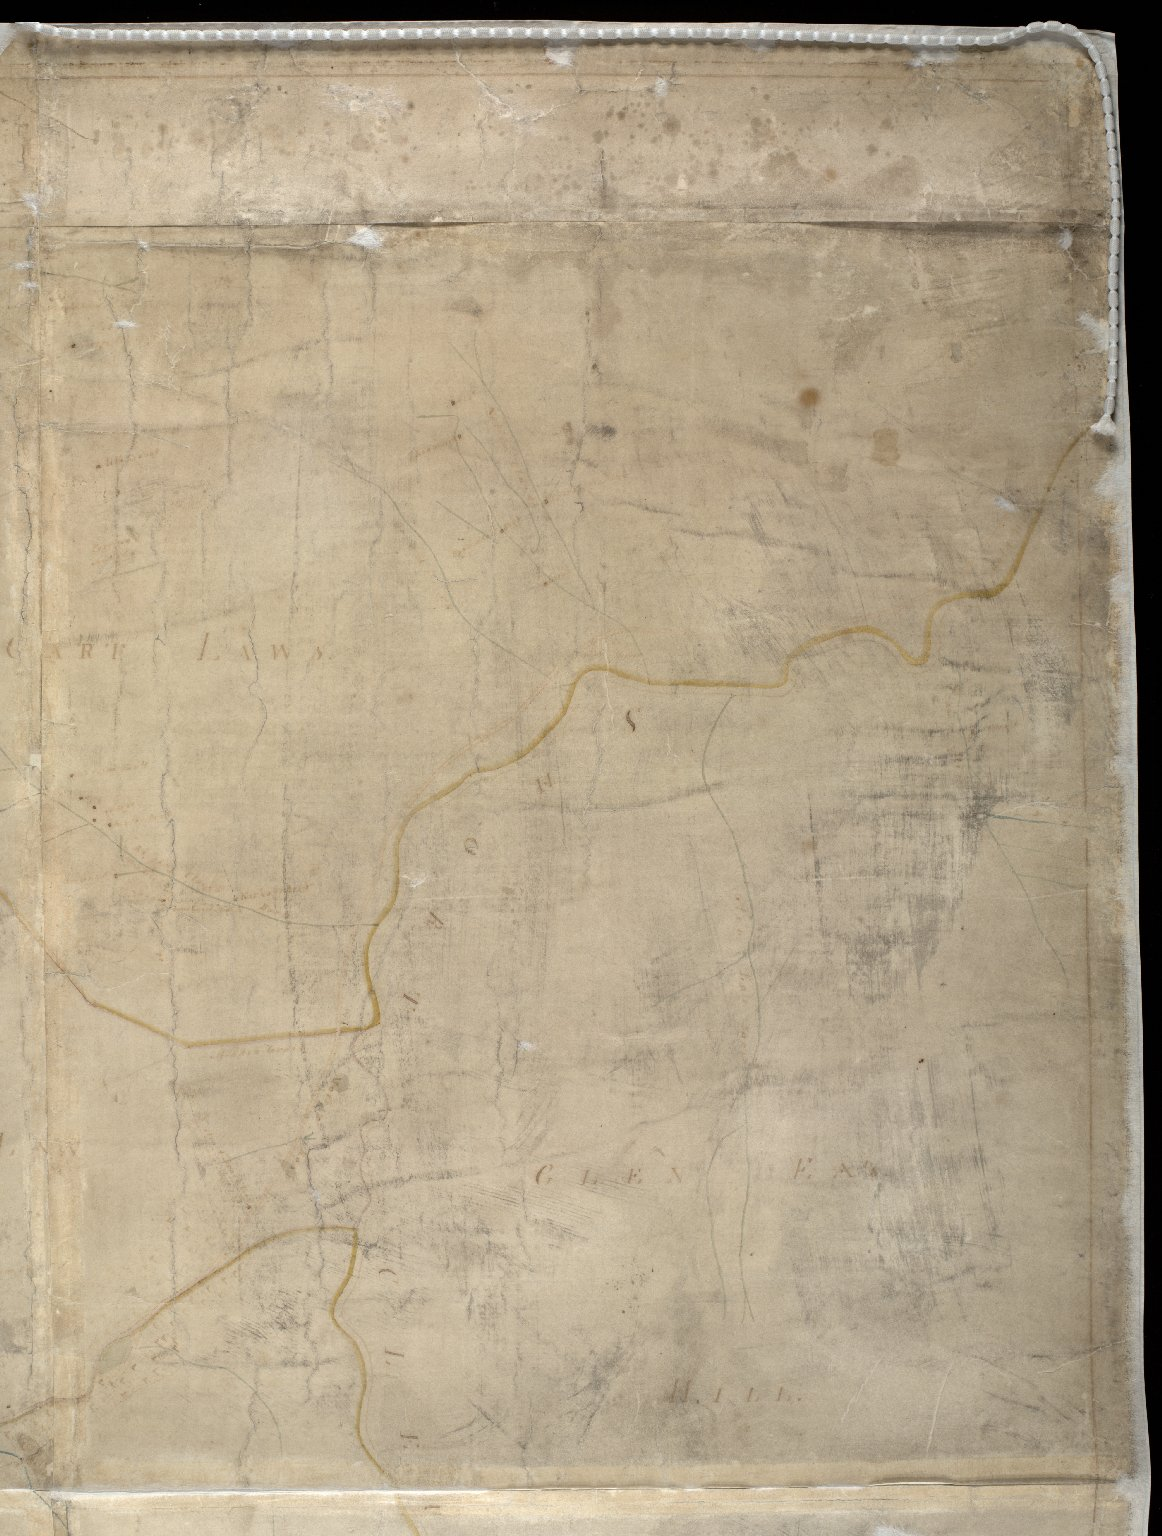 Copy of a Map of the Lead Mines [?] the Estate of the Right Honble the Earl of Hopetoun Leadhills in the county of Lanark [1 of 4]